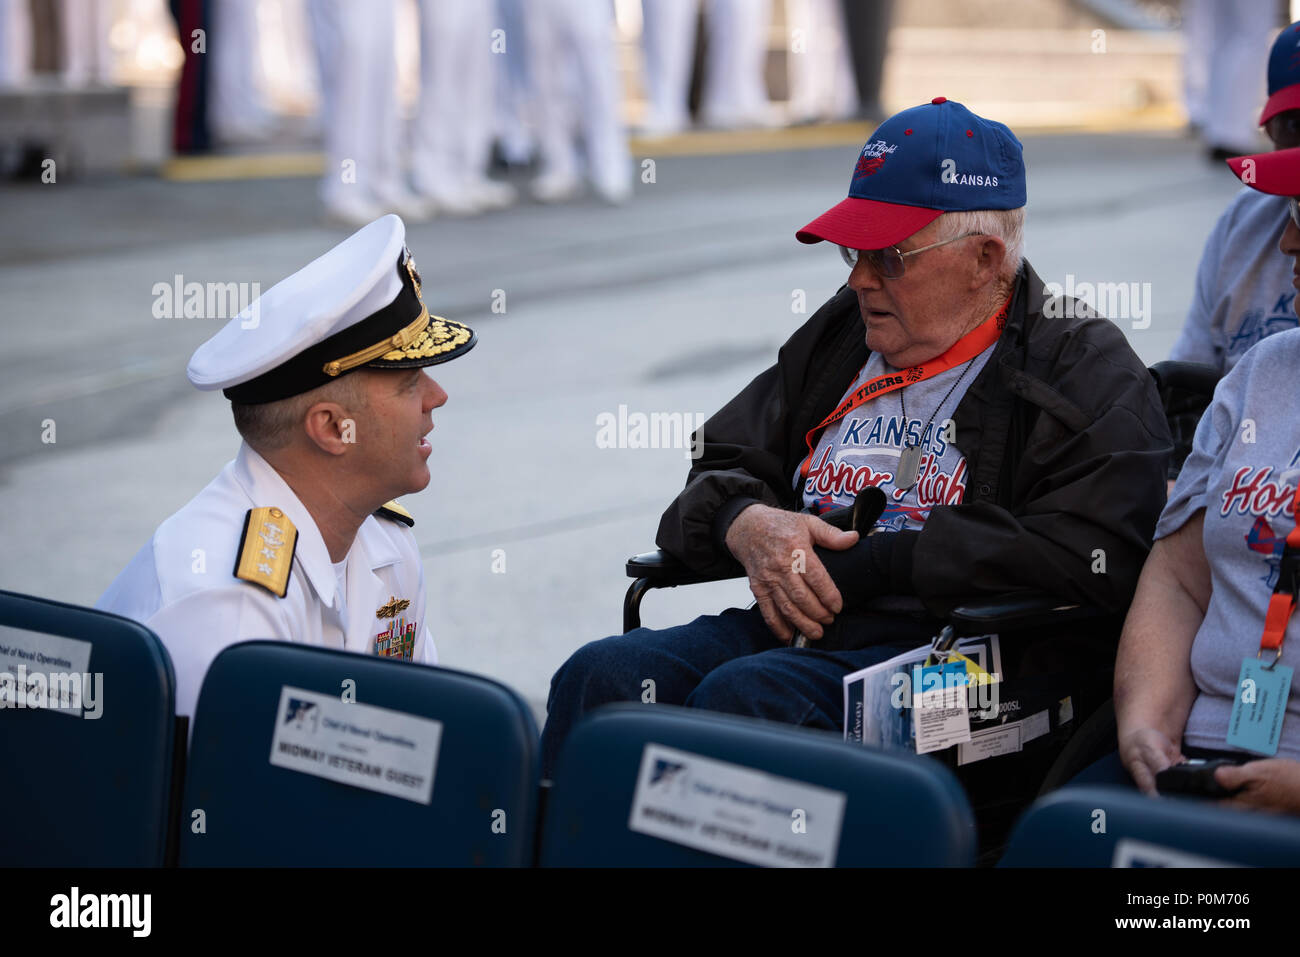 180605-N-HG258-1031 WASHINGTON (June 5, 2018) Rear Adm. Ronald Boxall meets with members of an Honor Flight from Kansas at the U.S. Navy Memorial in Washington, D.C., before the commemoration of the 76th anniversary of the Battle of Midway. The Battle of Midway began on June 4 in 1942 and stands as one of the U.S. Navy's most historically significant naval battles. Fought on the high seas of the Pacific more than half a century ago, this battle altered the course of the war in the Pacific and thereby shaped the outcome of world events. (U.S. Navy photo by Senior Chief Musician Stephen Hassay/R - Stock Image